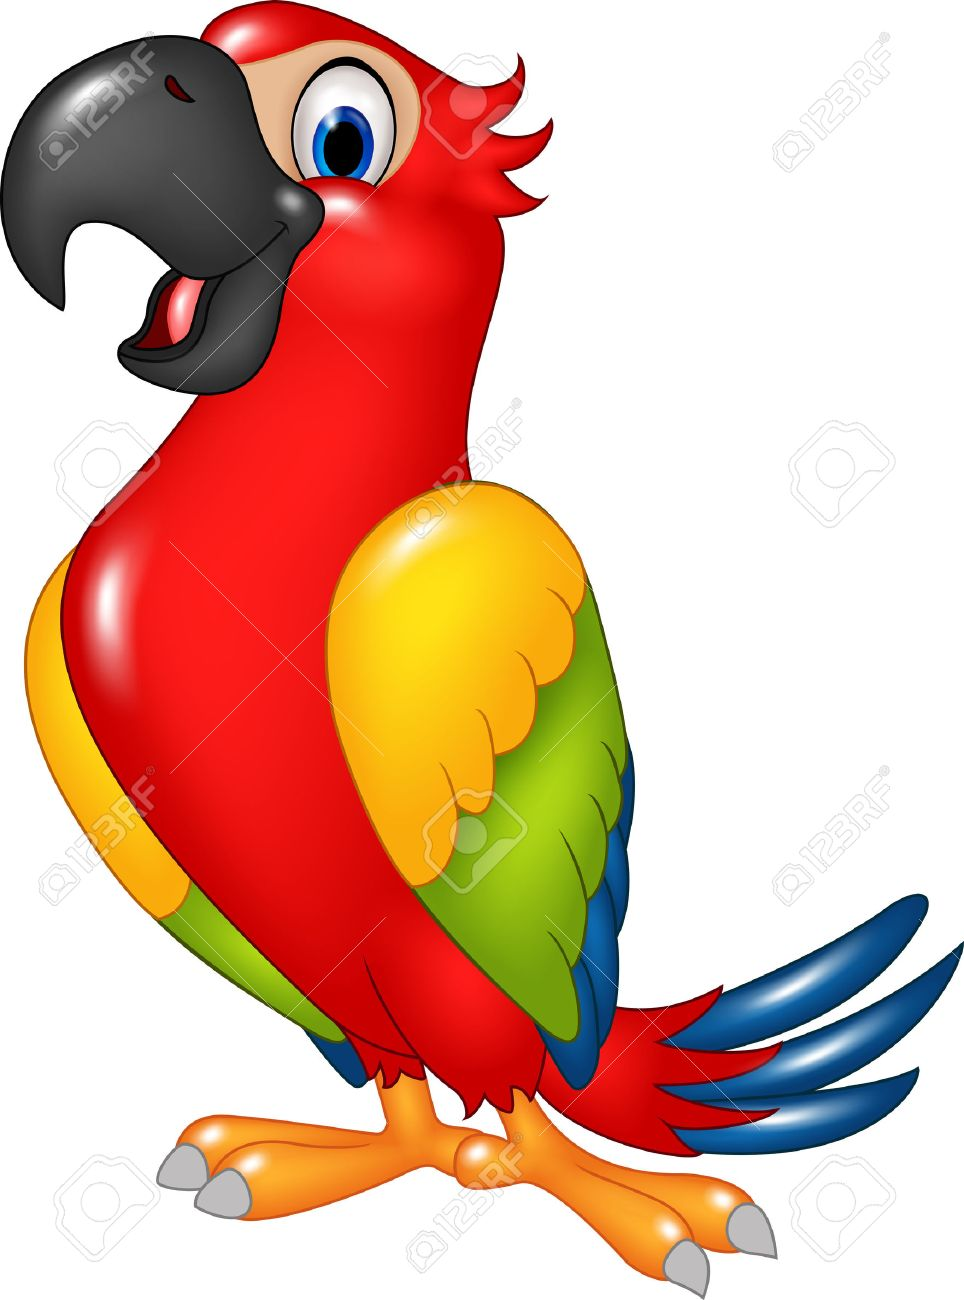 Vector illustration of Cartoon funny parrot isolated on white background - 47618566